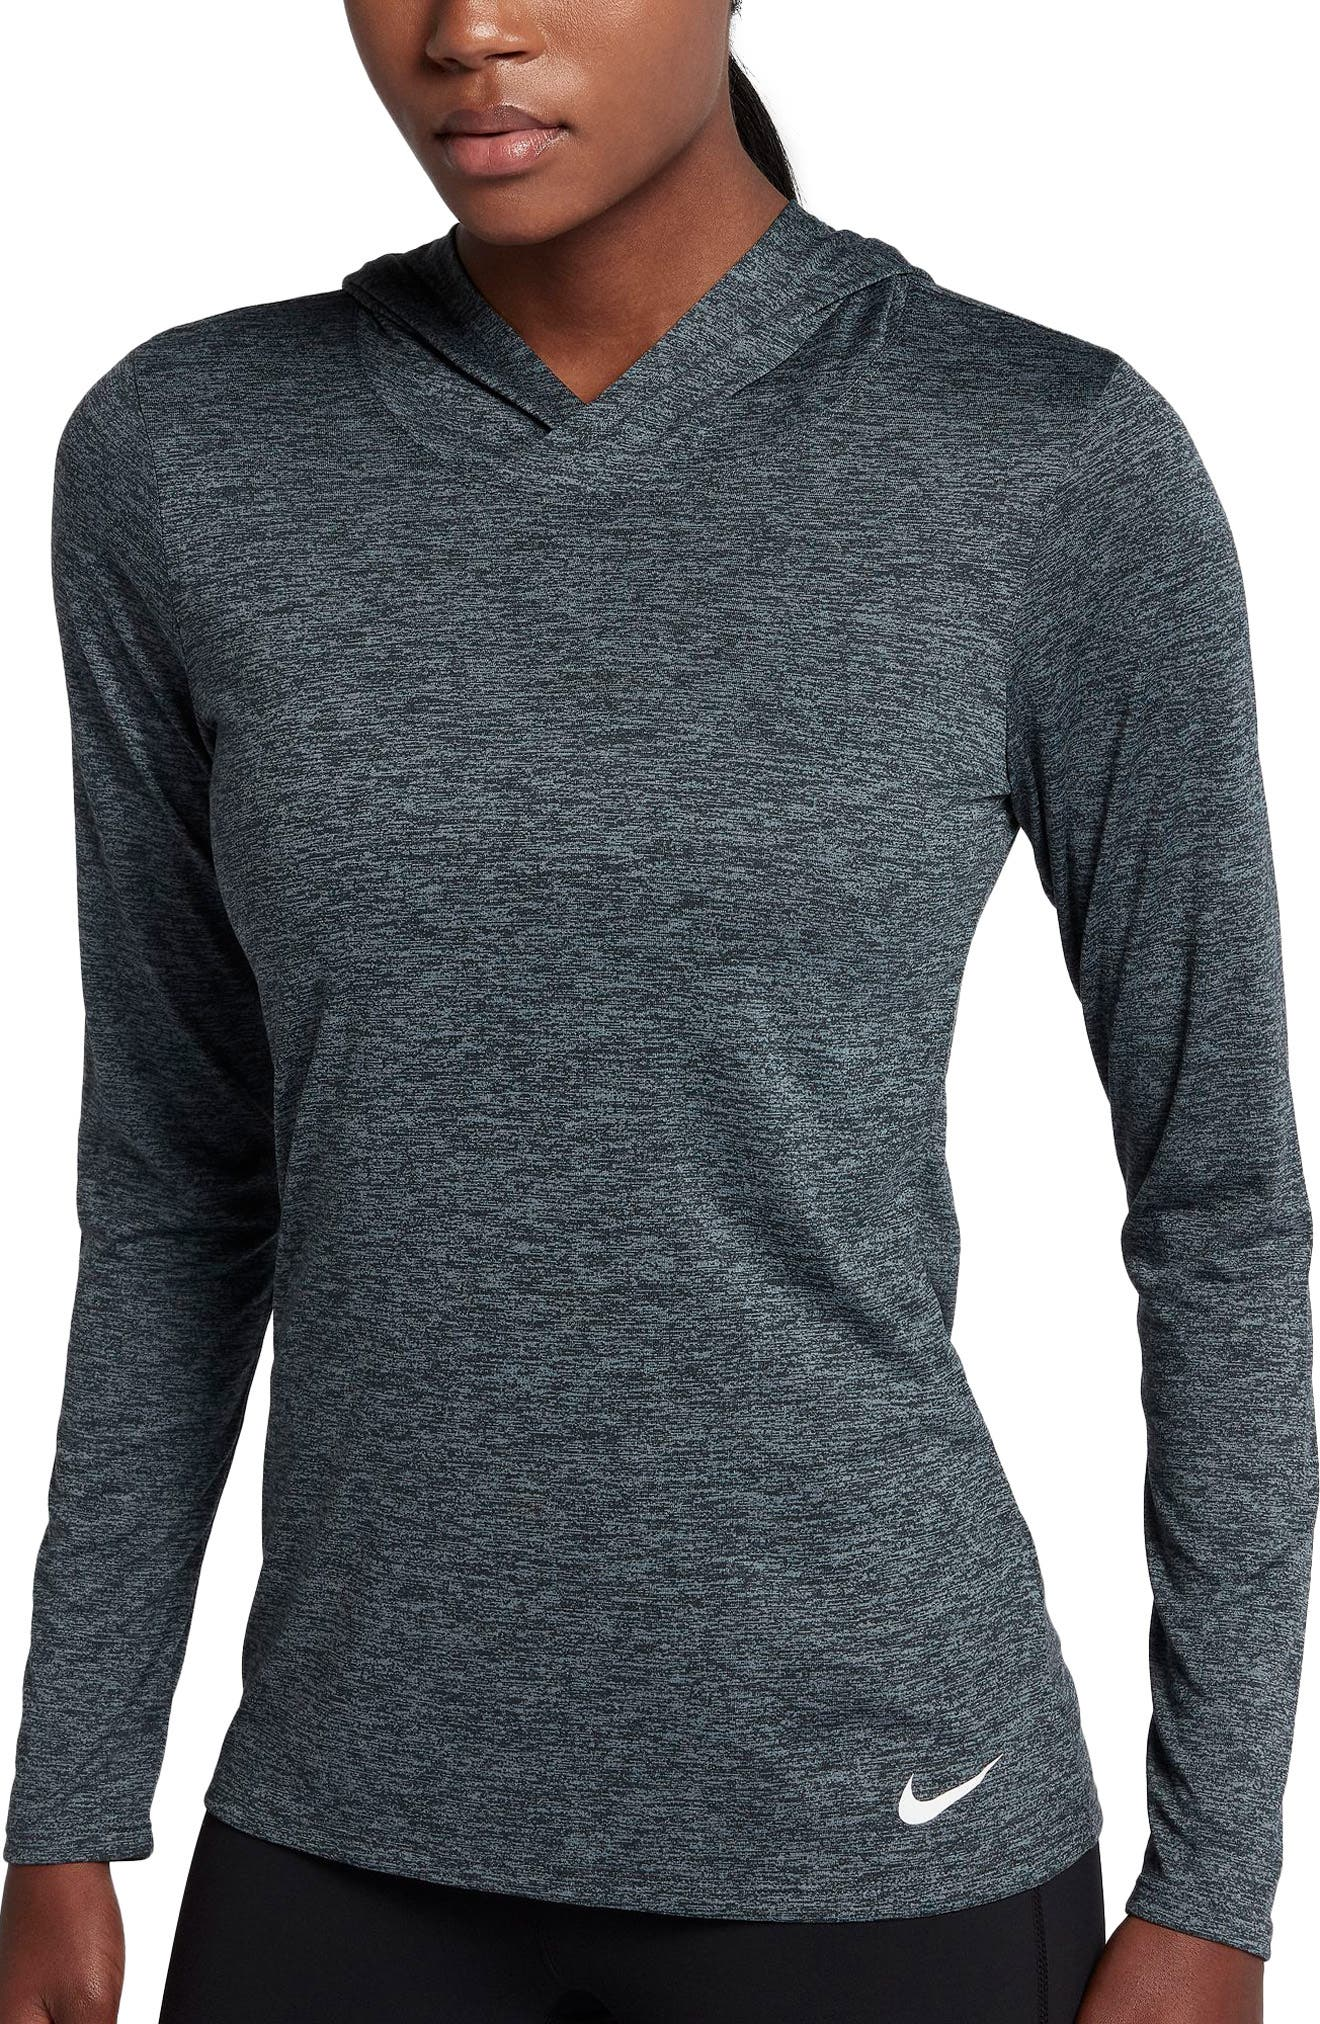 Dry Legend Hooded Training Top,                             Main thumbnail 1, color,                             Black/ Cool Grey/ White